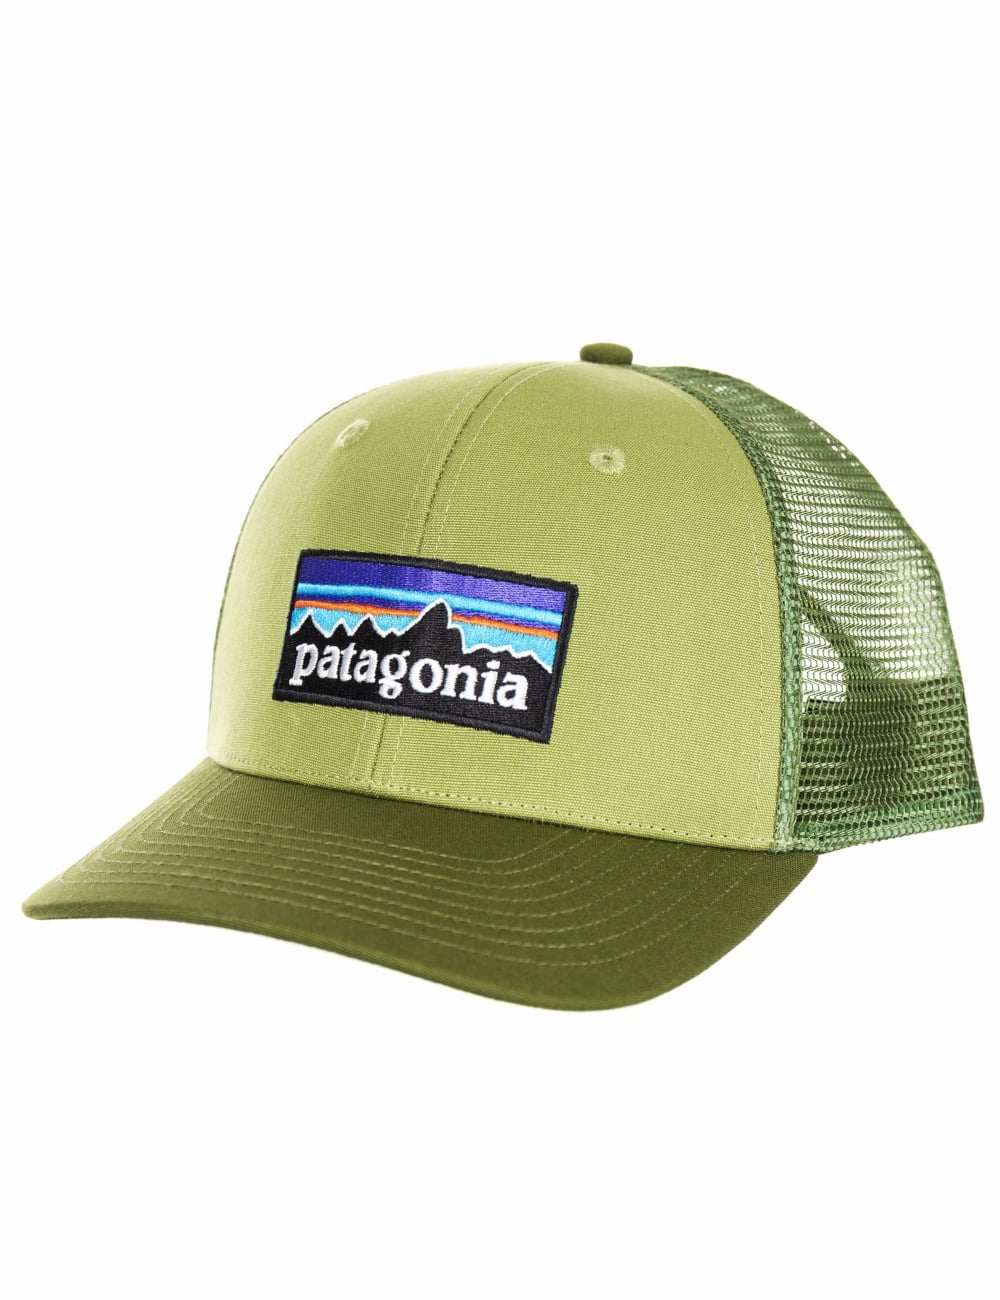 Patagonia P-6 Logo Trucker Hat - Crag Green - Hat Shop from Fat ... f8ddab62dce